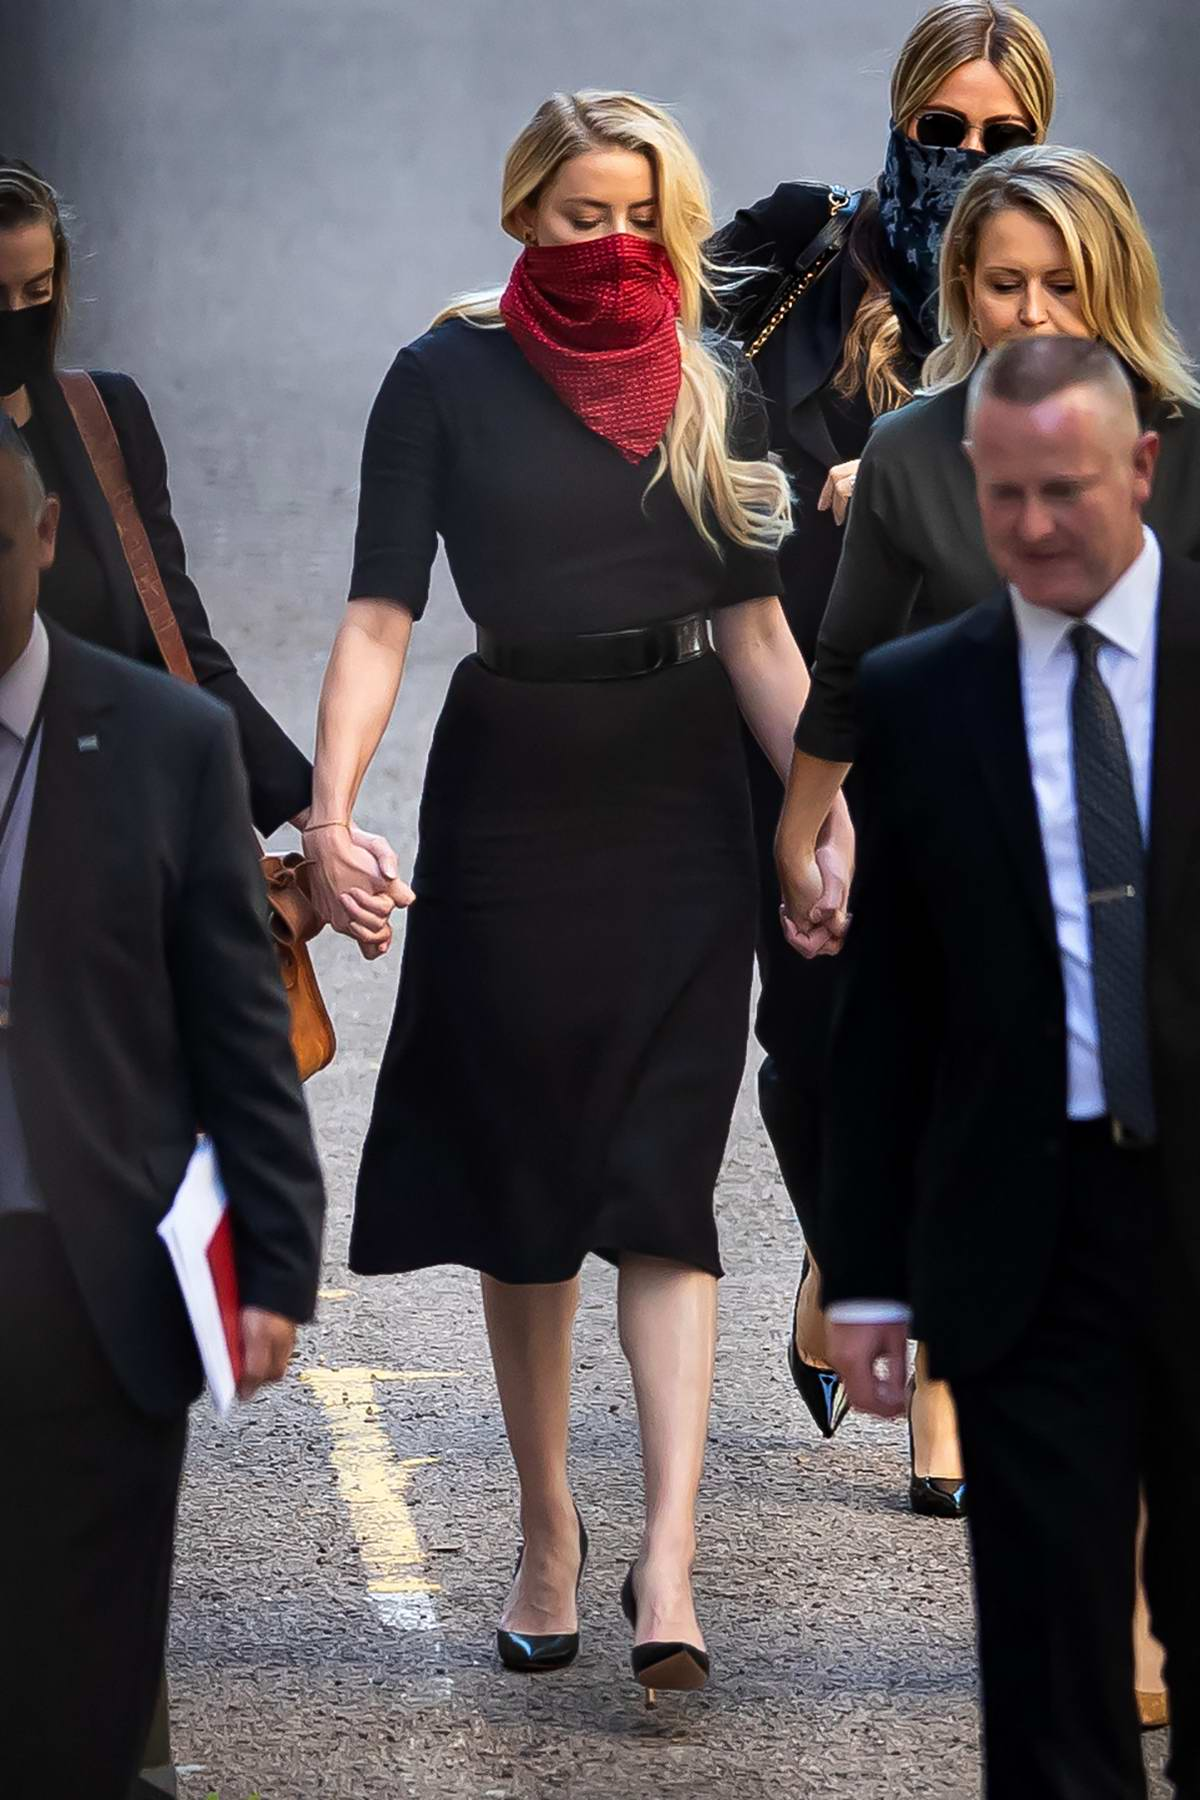 Amber Heard seen outside the High Court during day 1 and 2 of Johnny Depp's libel case in London, UK